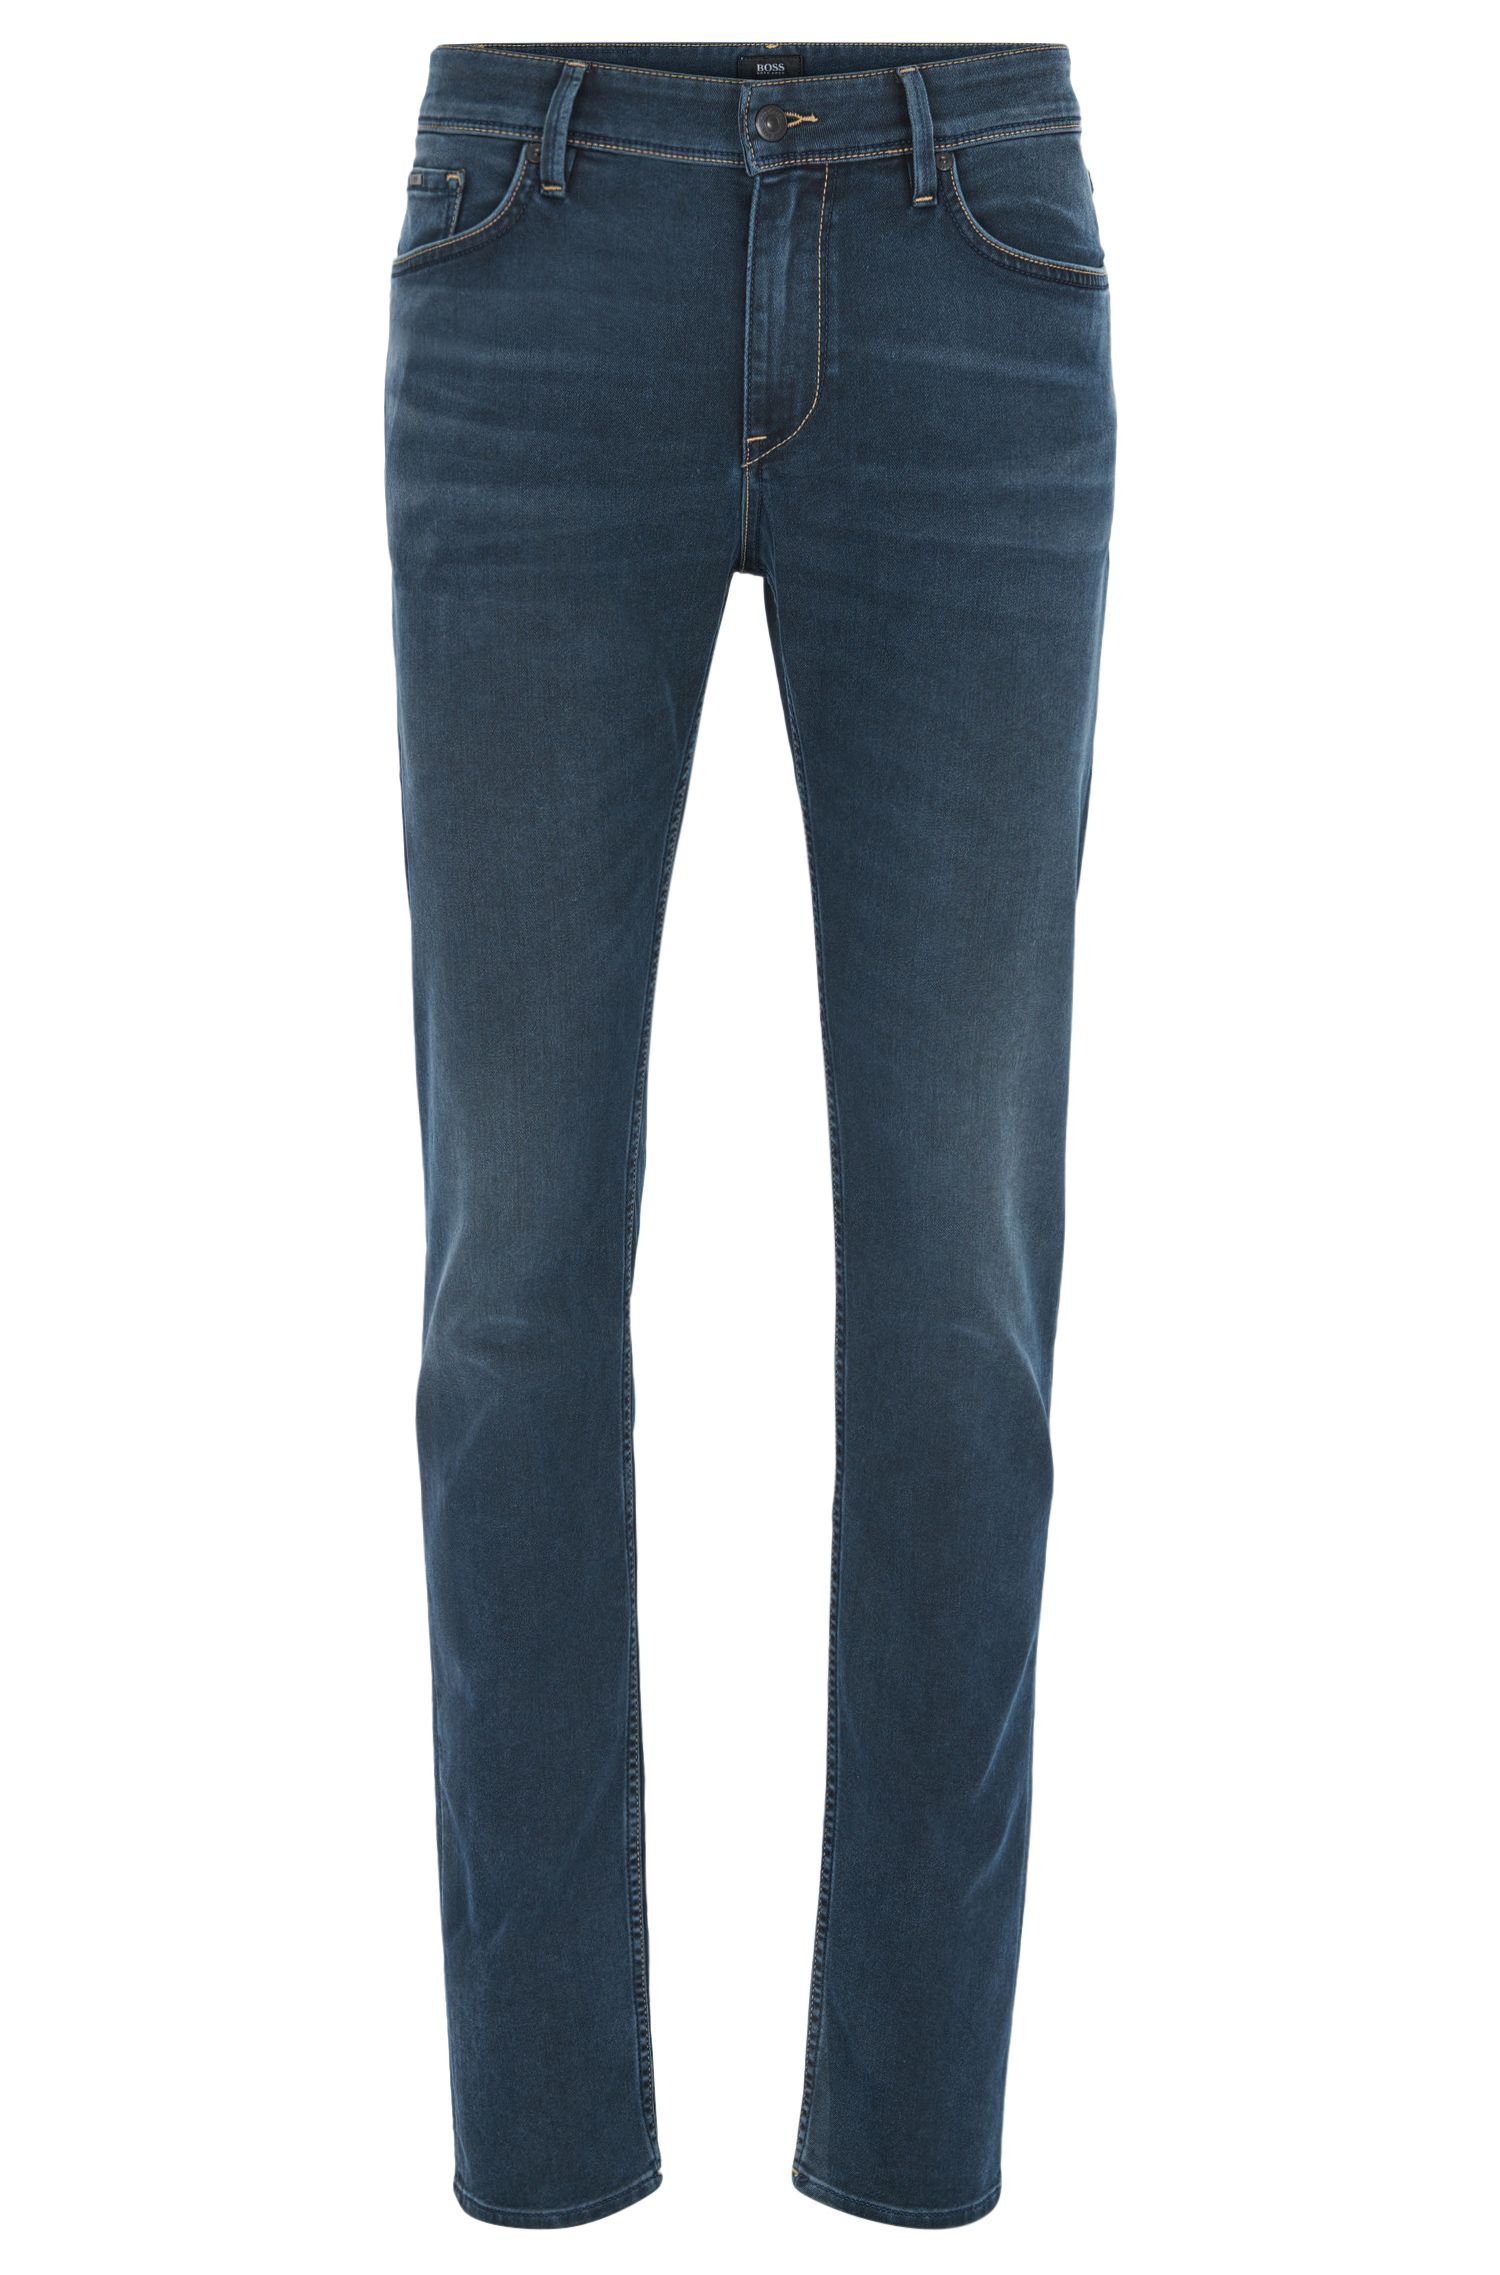 Jeans Slim Fit en denim stretch italien confortable